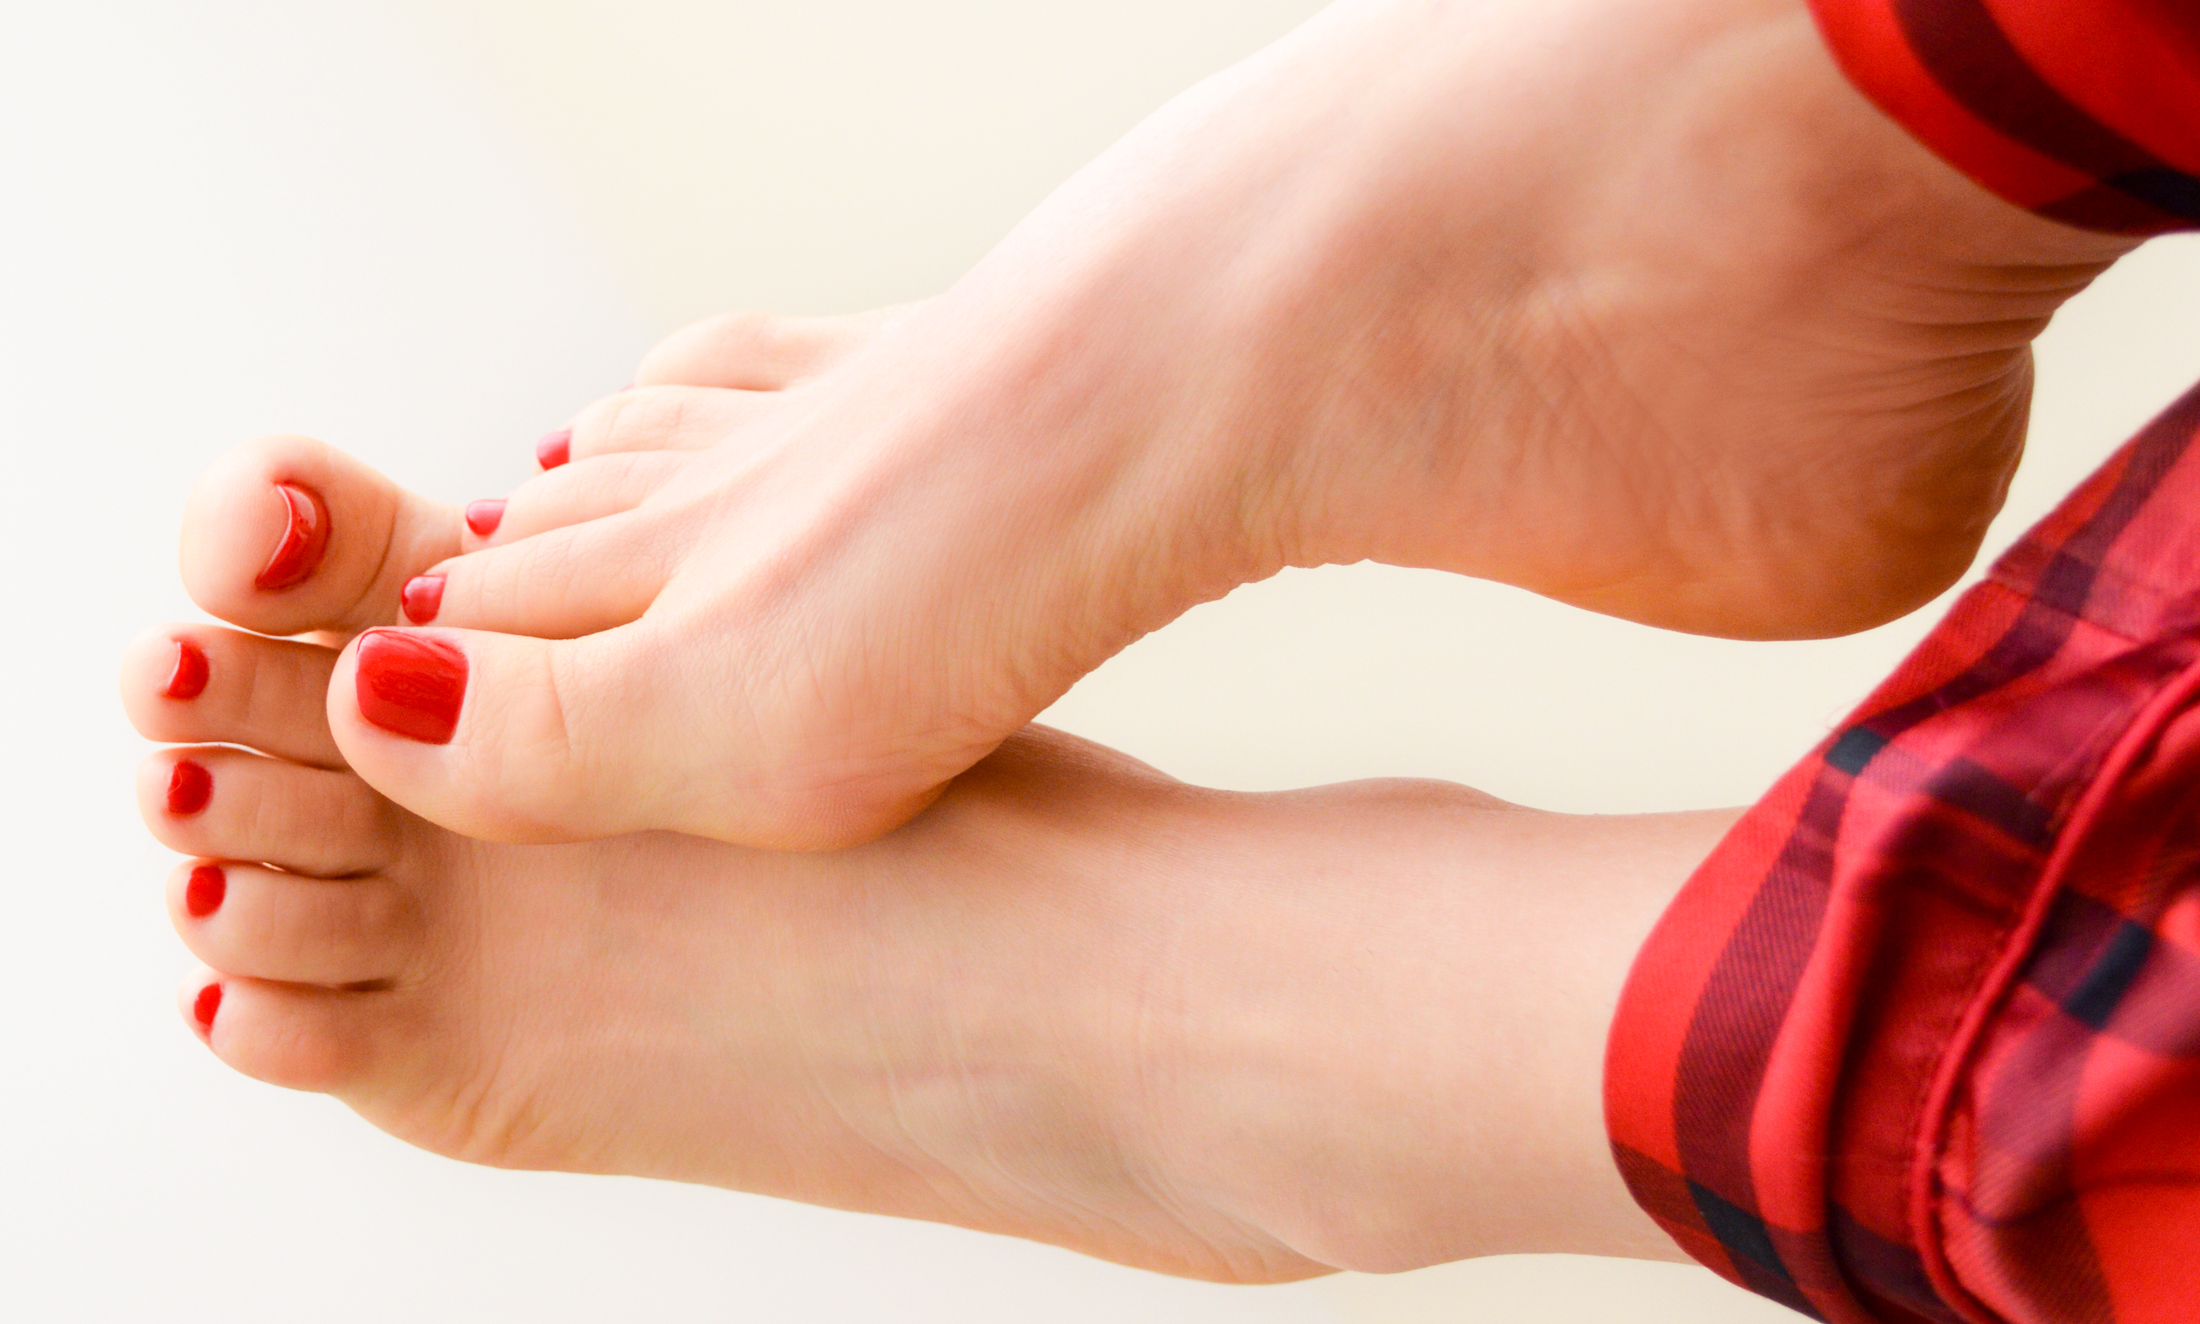 Foot Fetish Red Pedicure Feet Toes